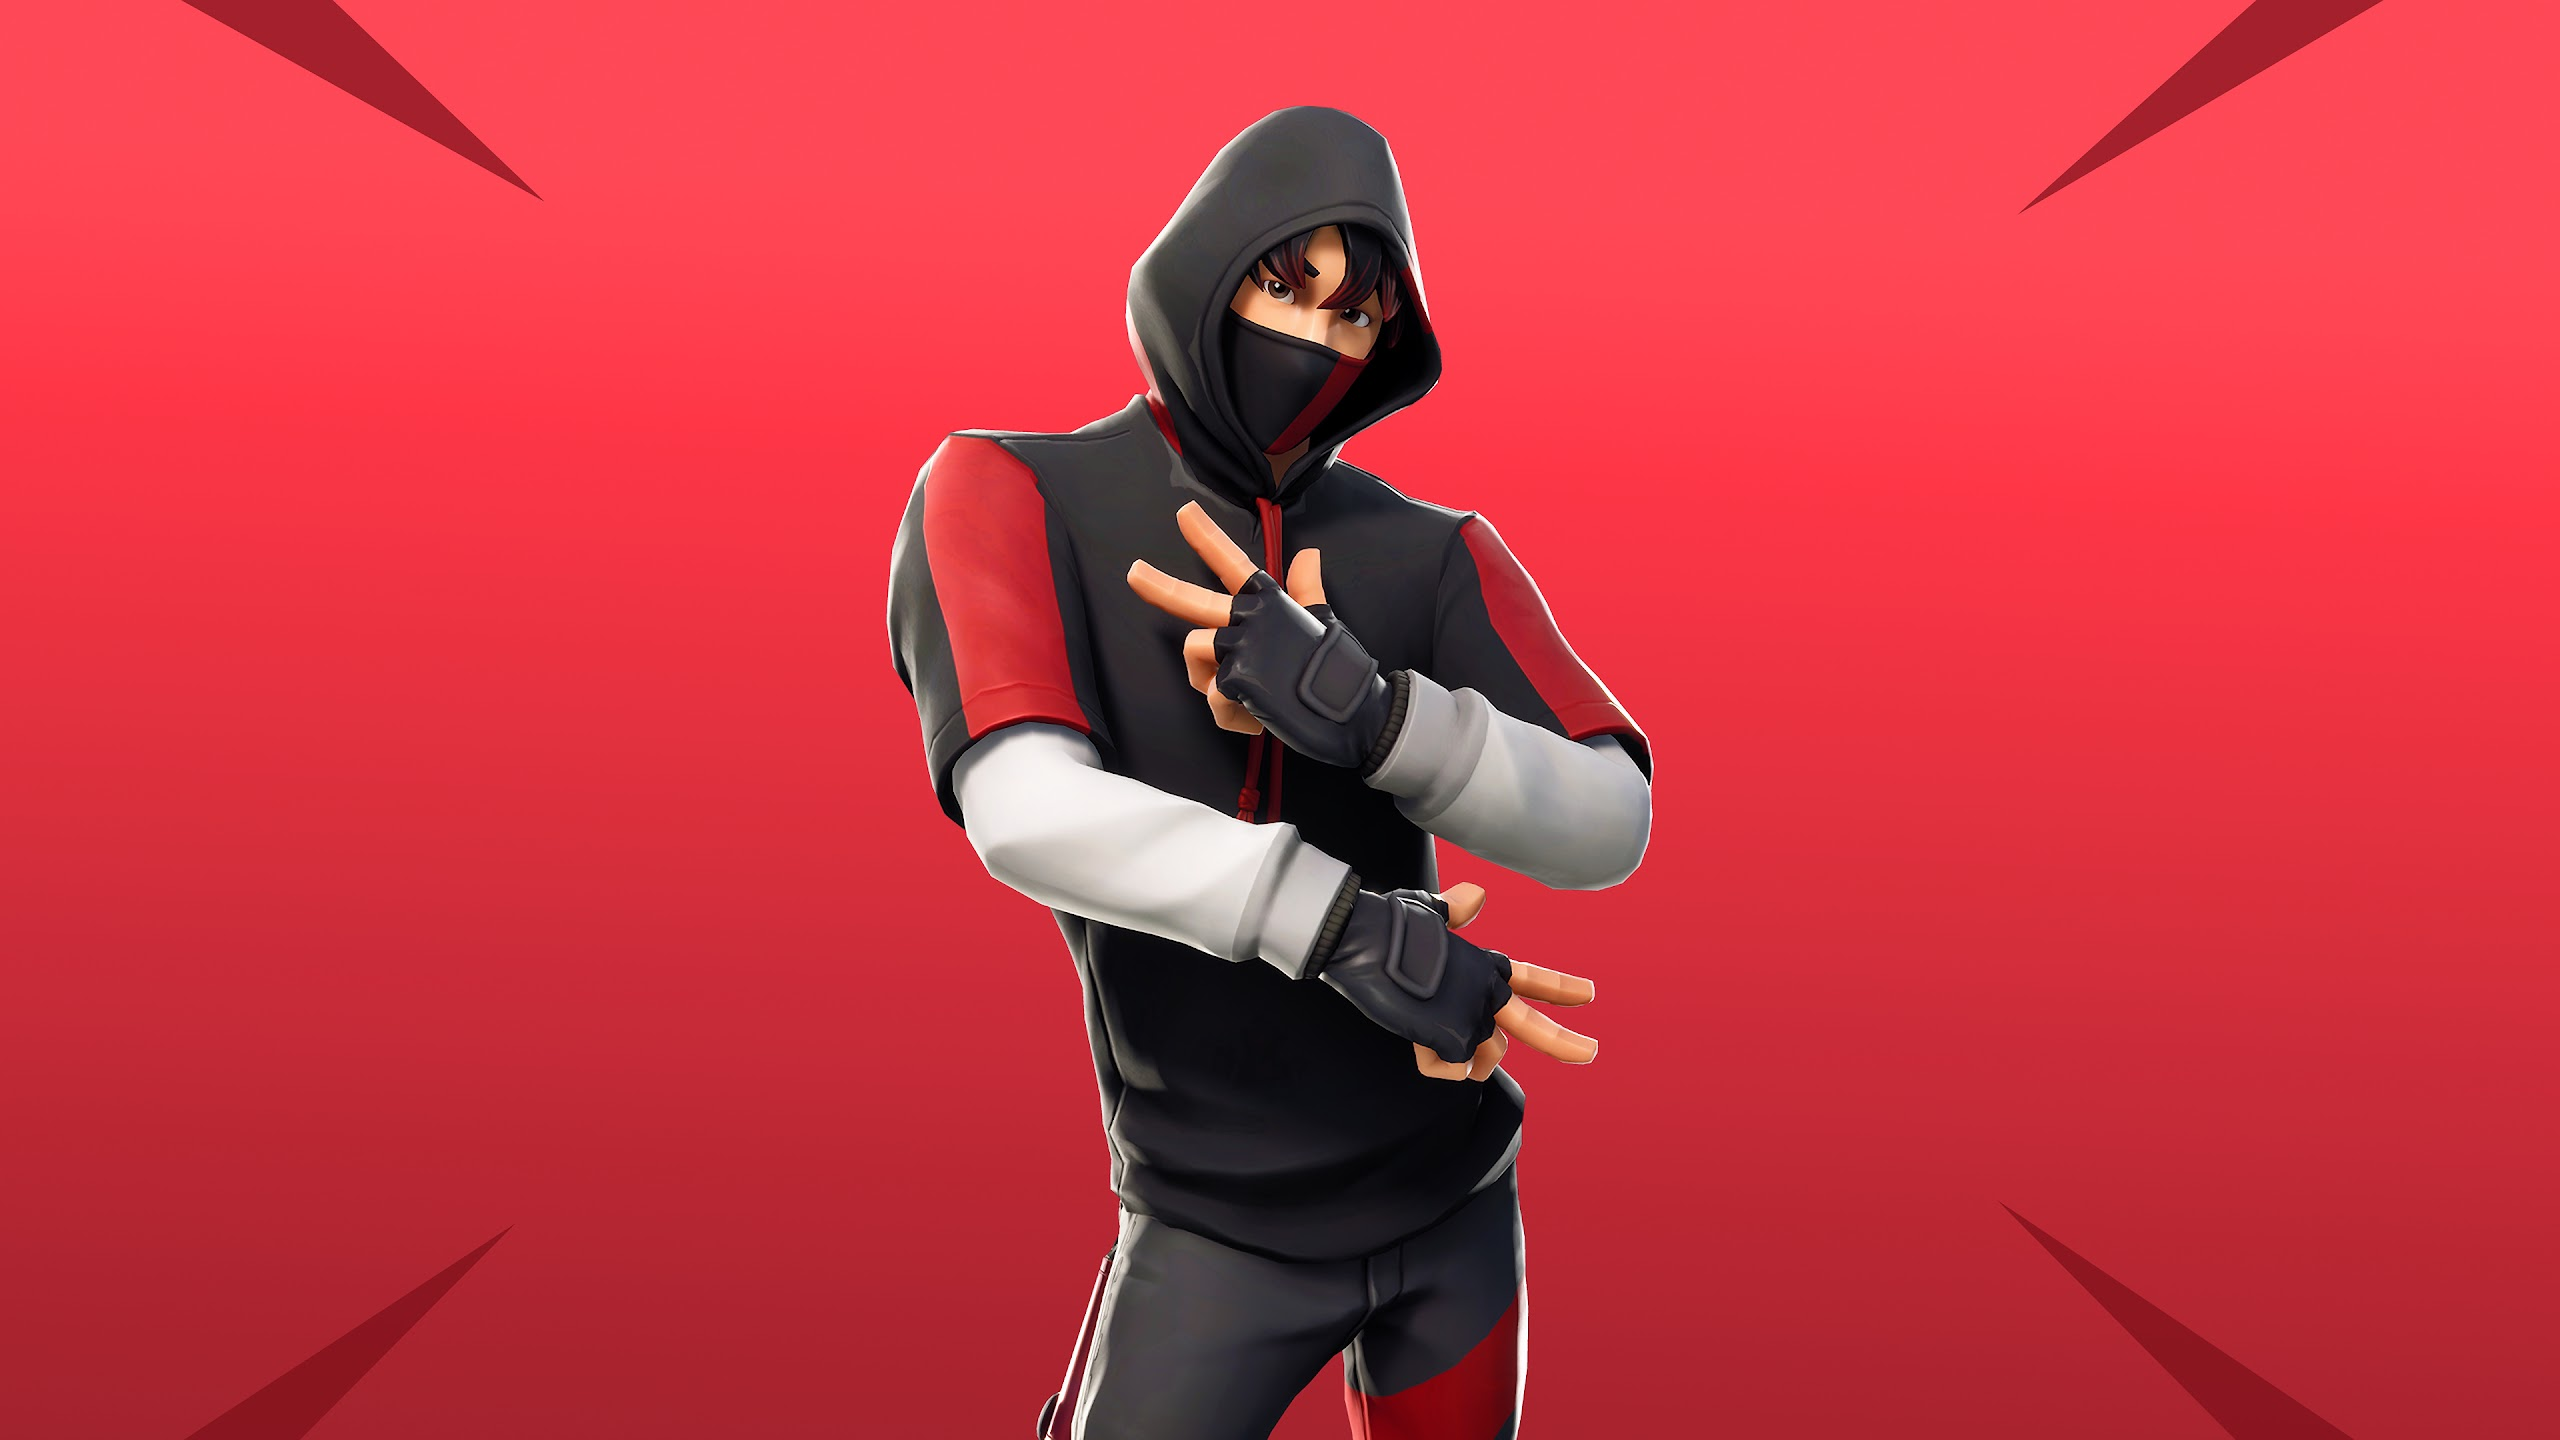 Fortnite Ikonik 4k Wallpaper 152